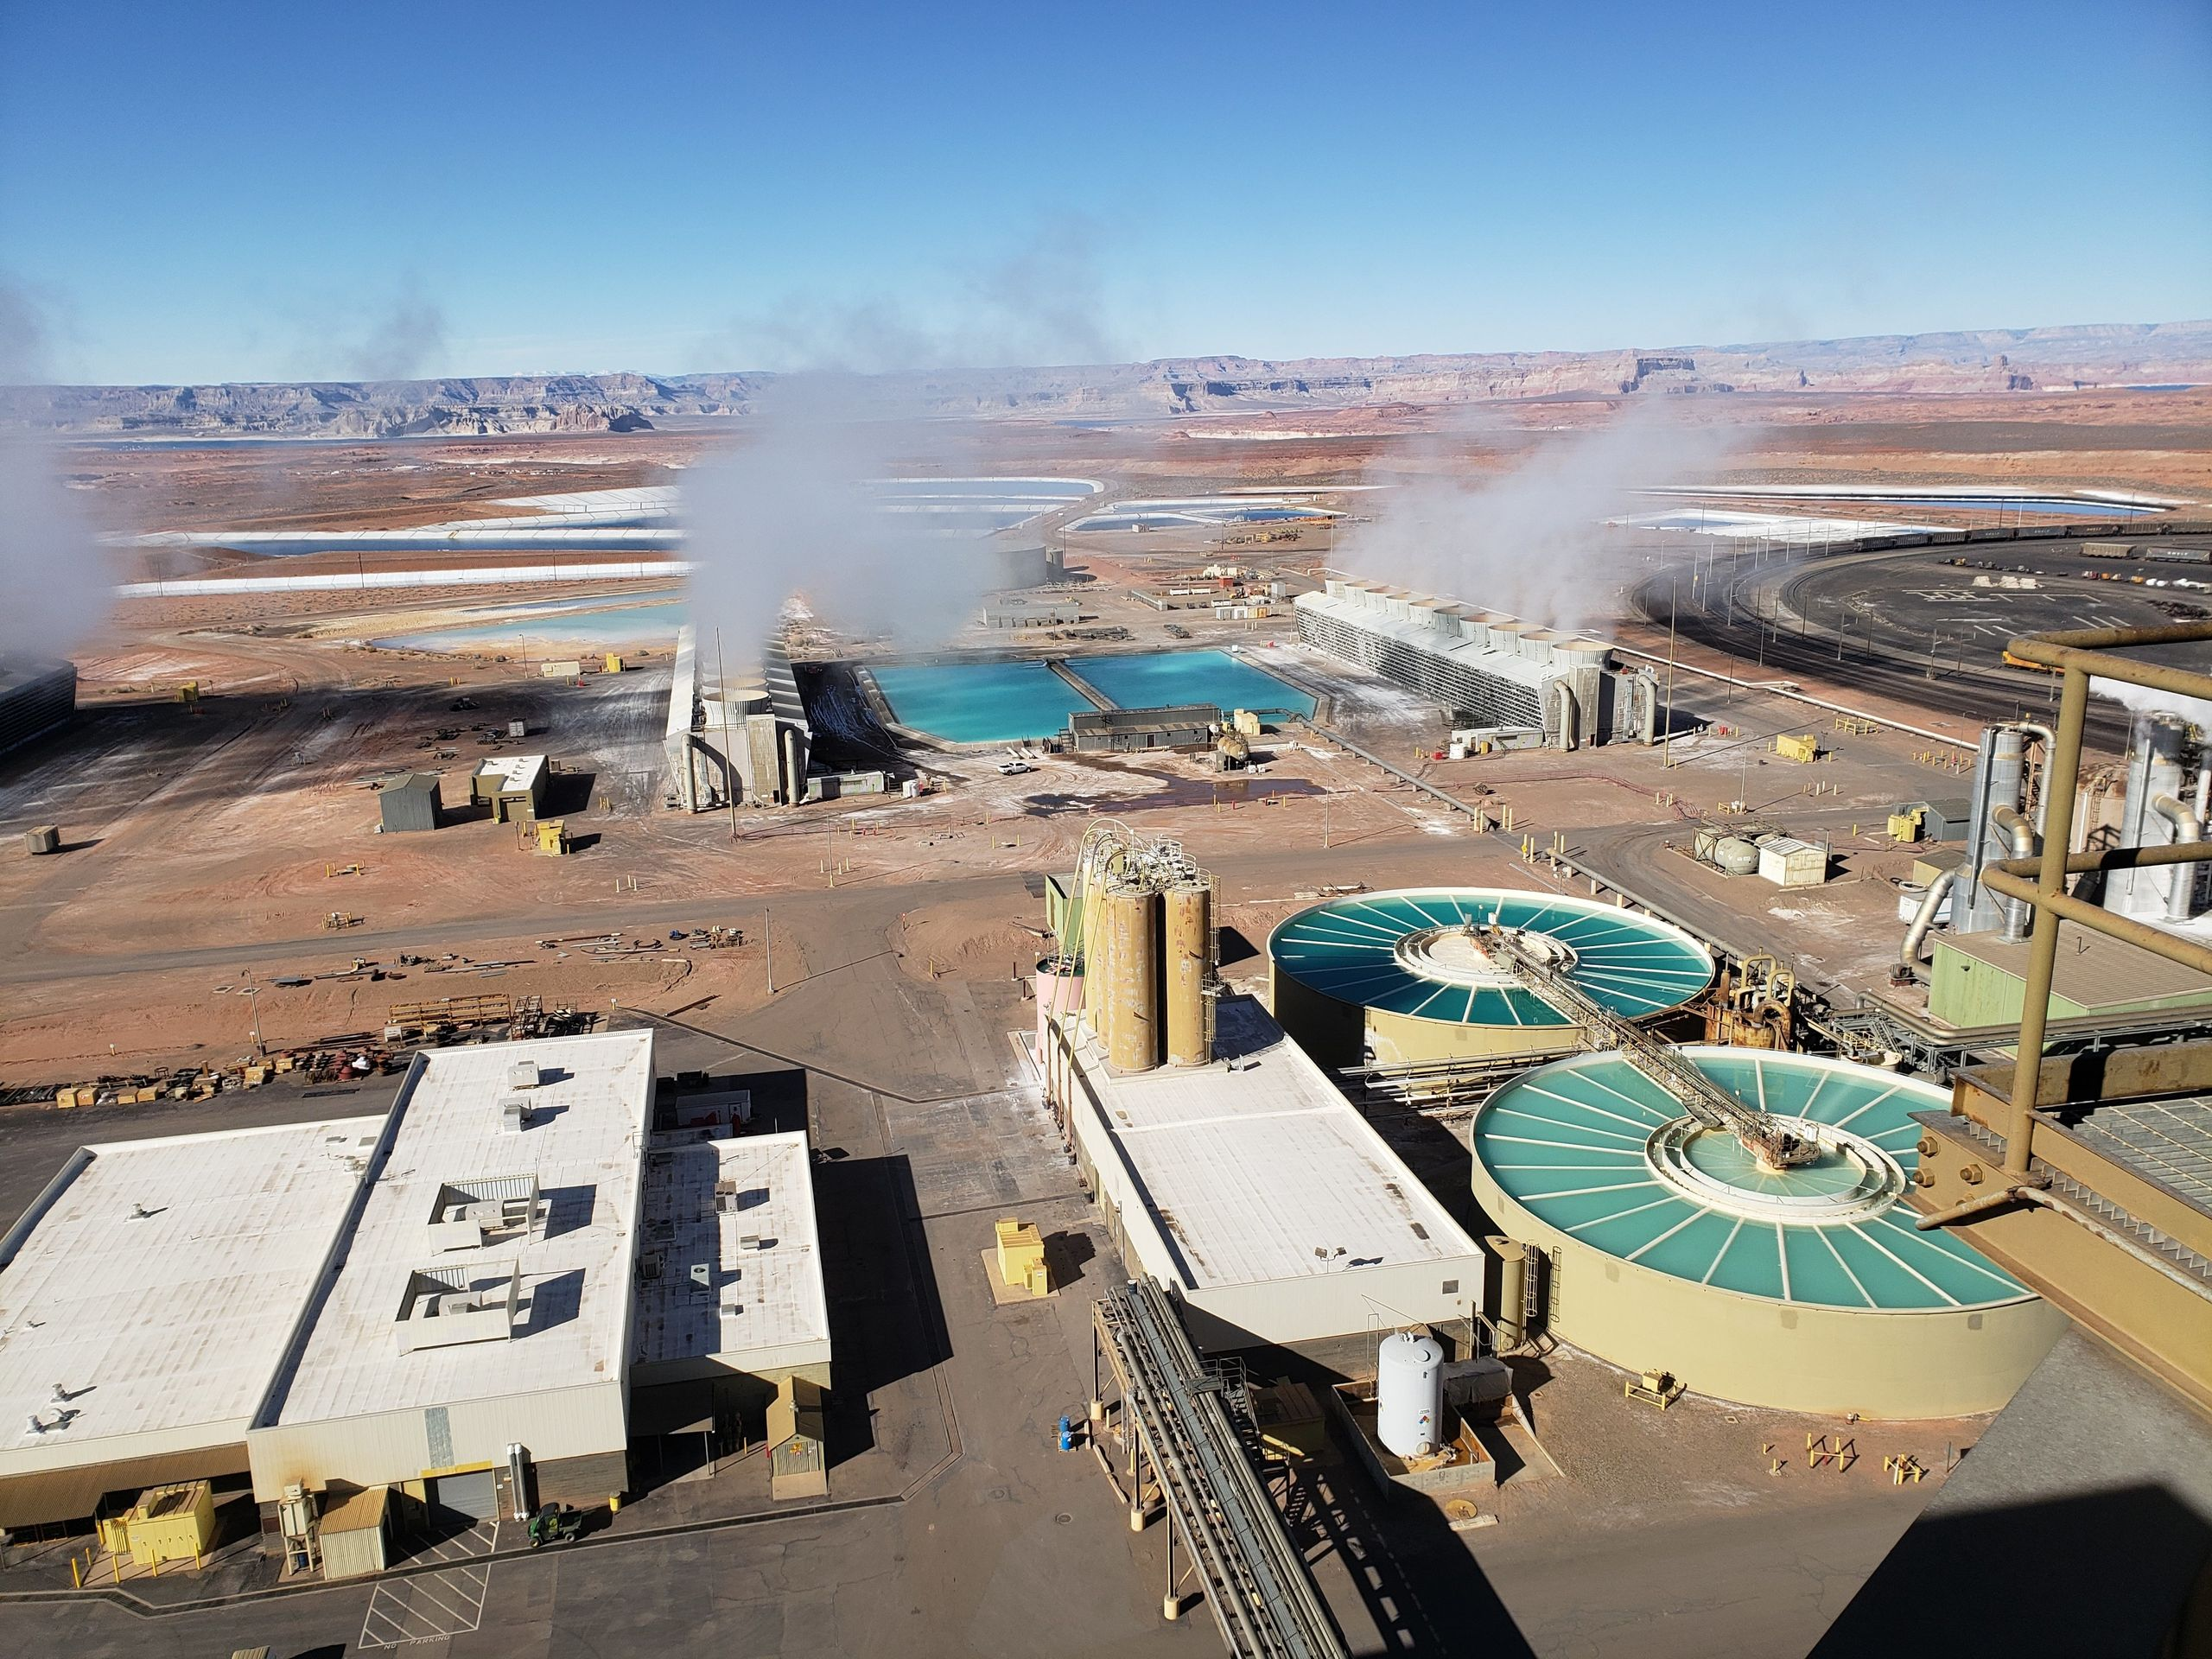 Pools adjacent to the Navajo Generating Station in northern Arizona.